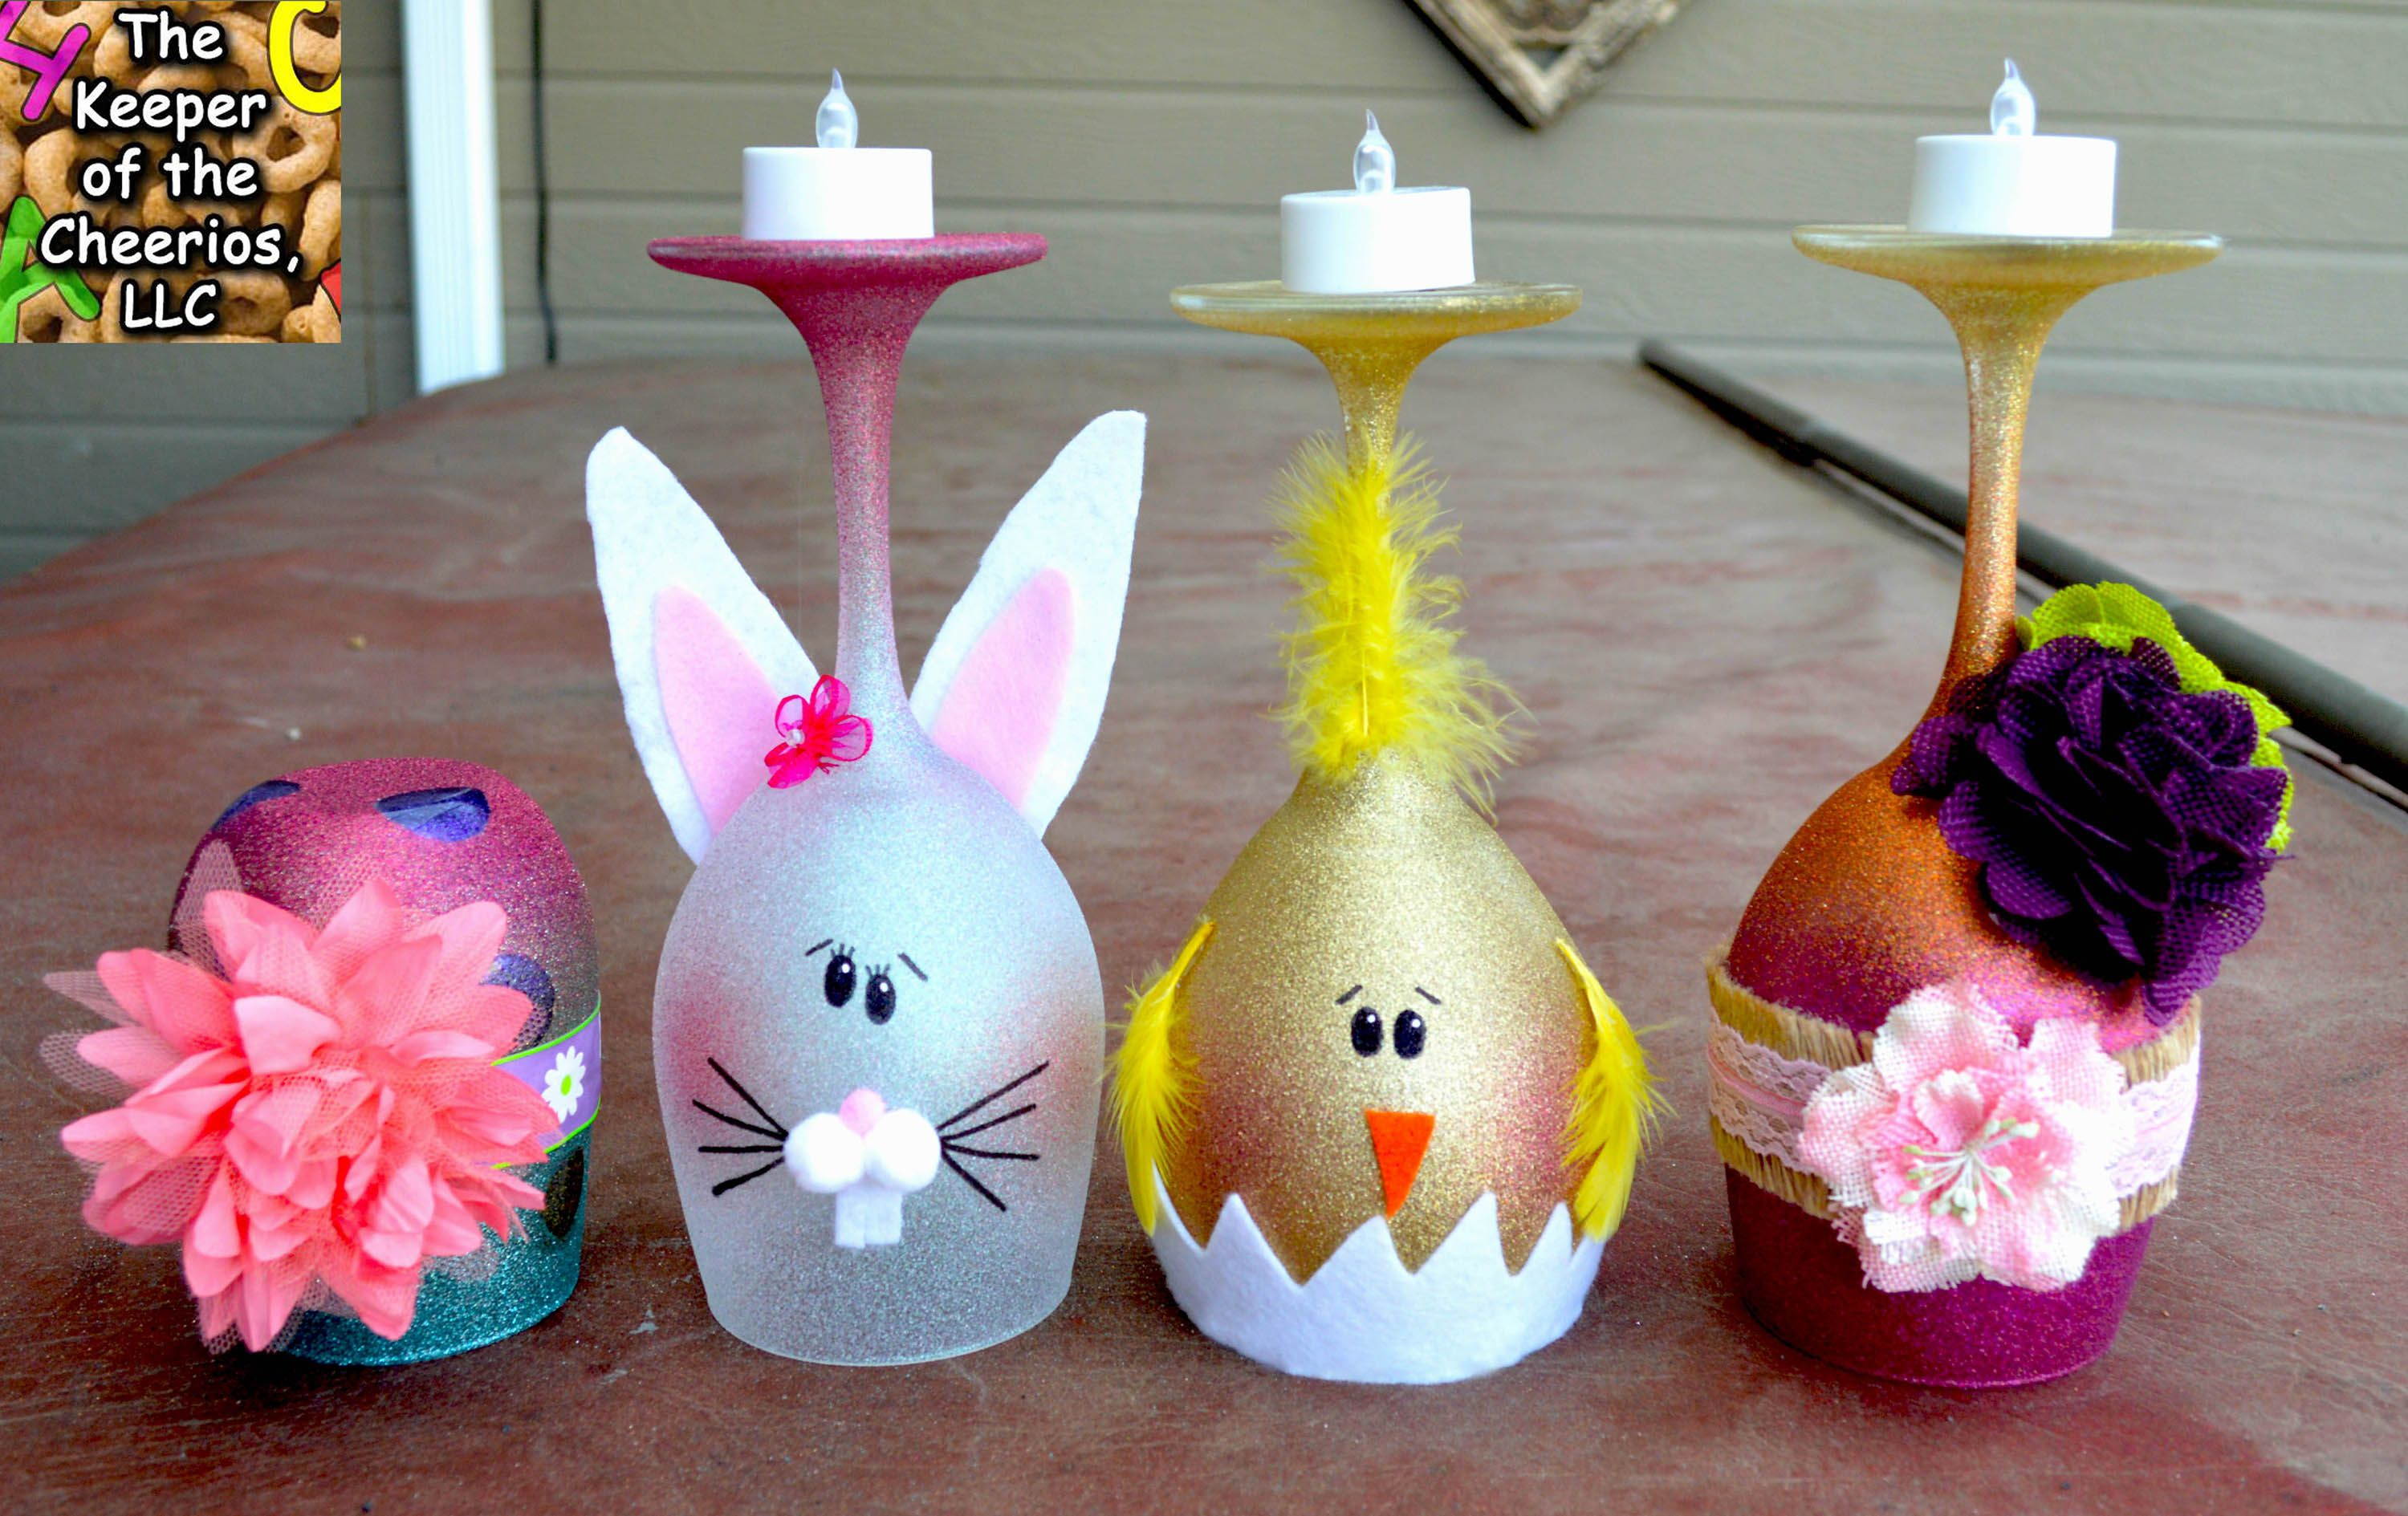 EASTER WINE GLASS CANDLE HOLDERS Wine glass candle